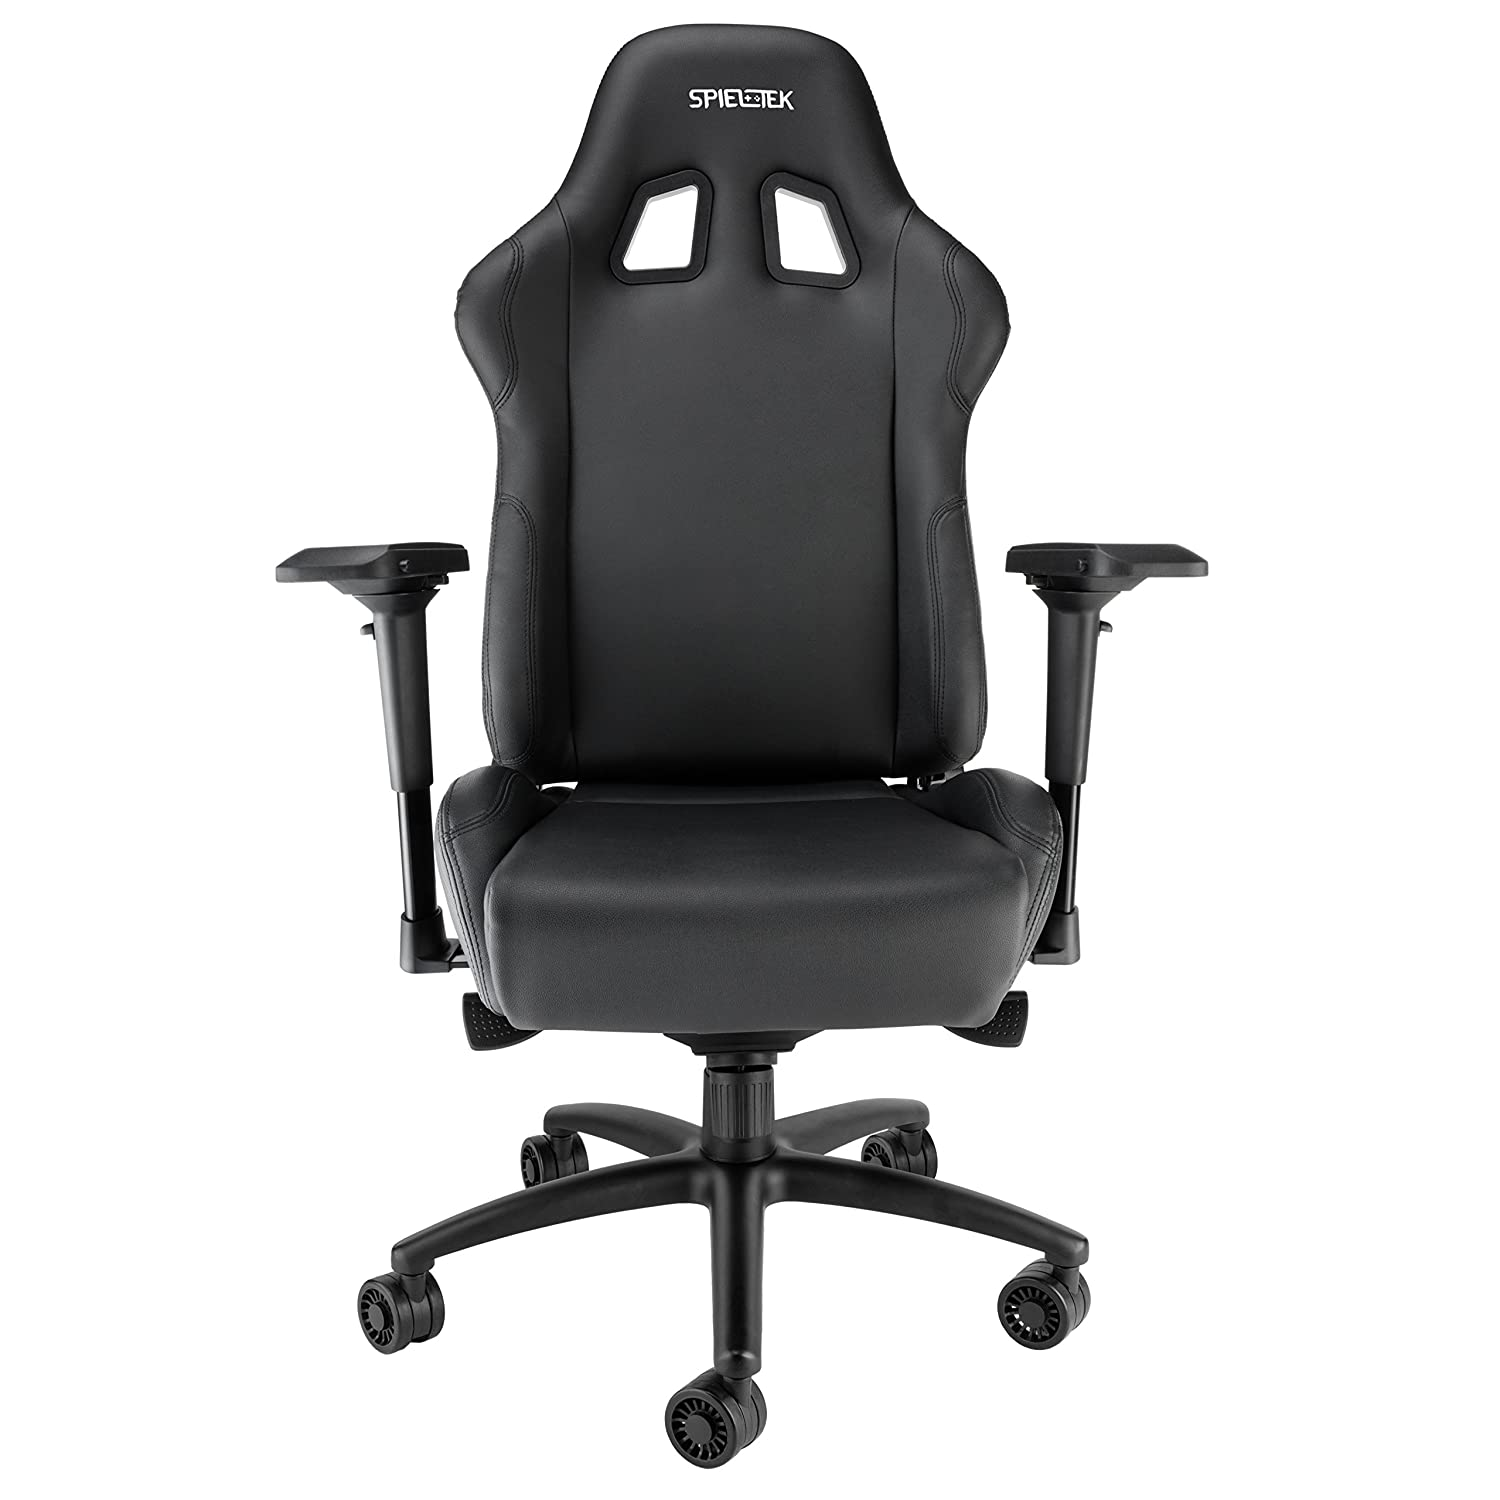 Amazon.com: Spieltek Bandit XL Gaming Chair (Black): Kitchen & Dining